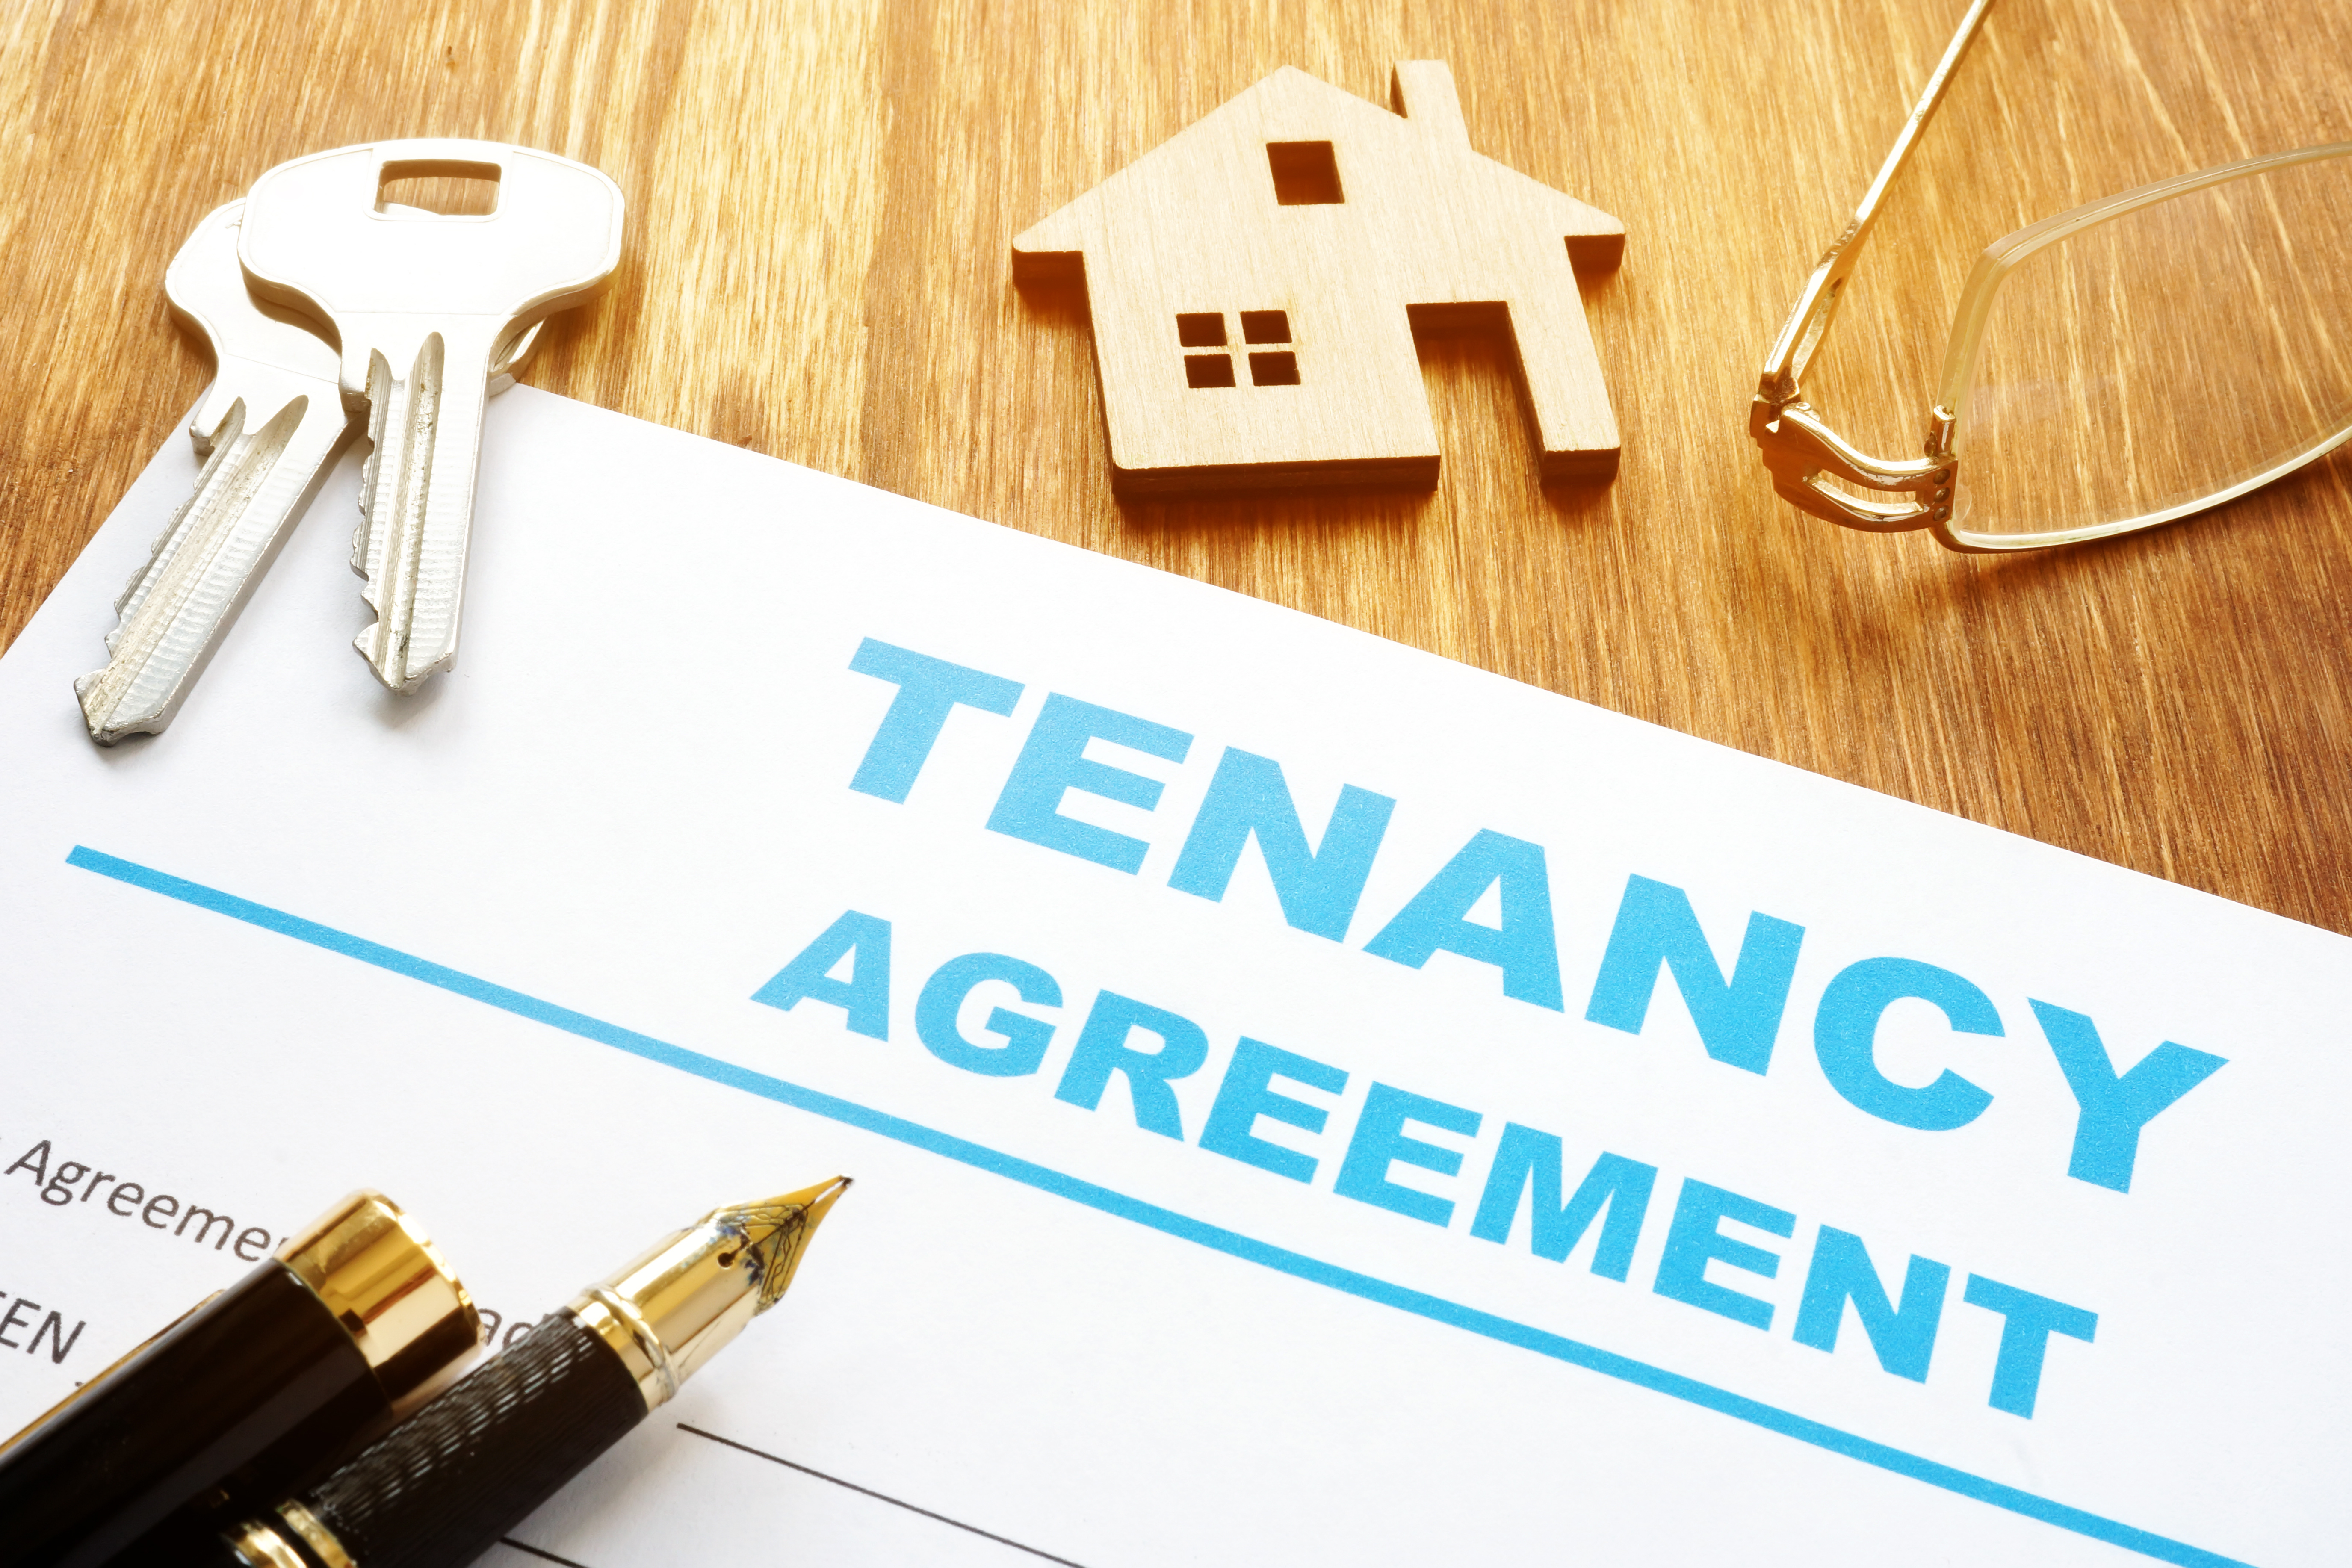 Tenancy agreement for rental lease and keys.